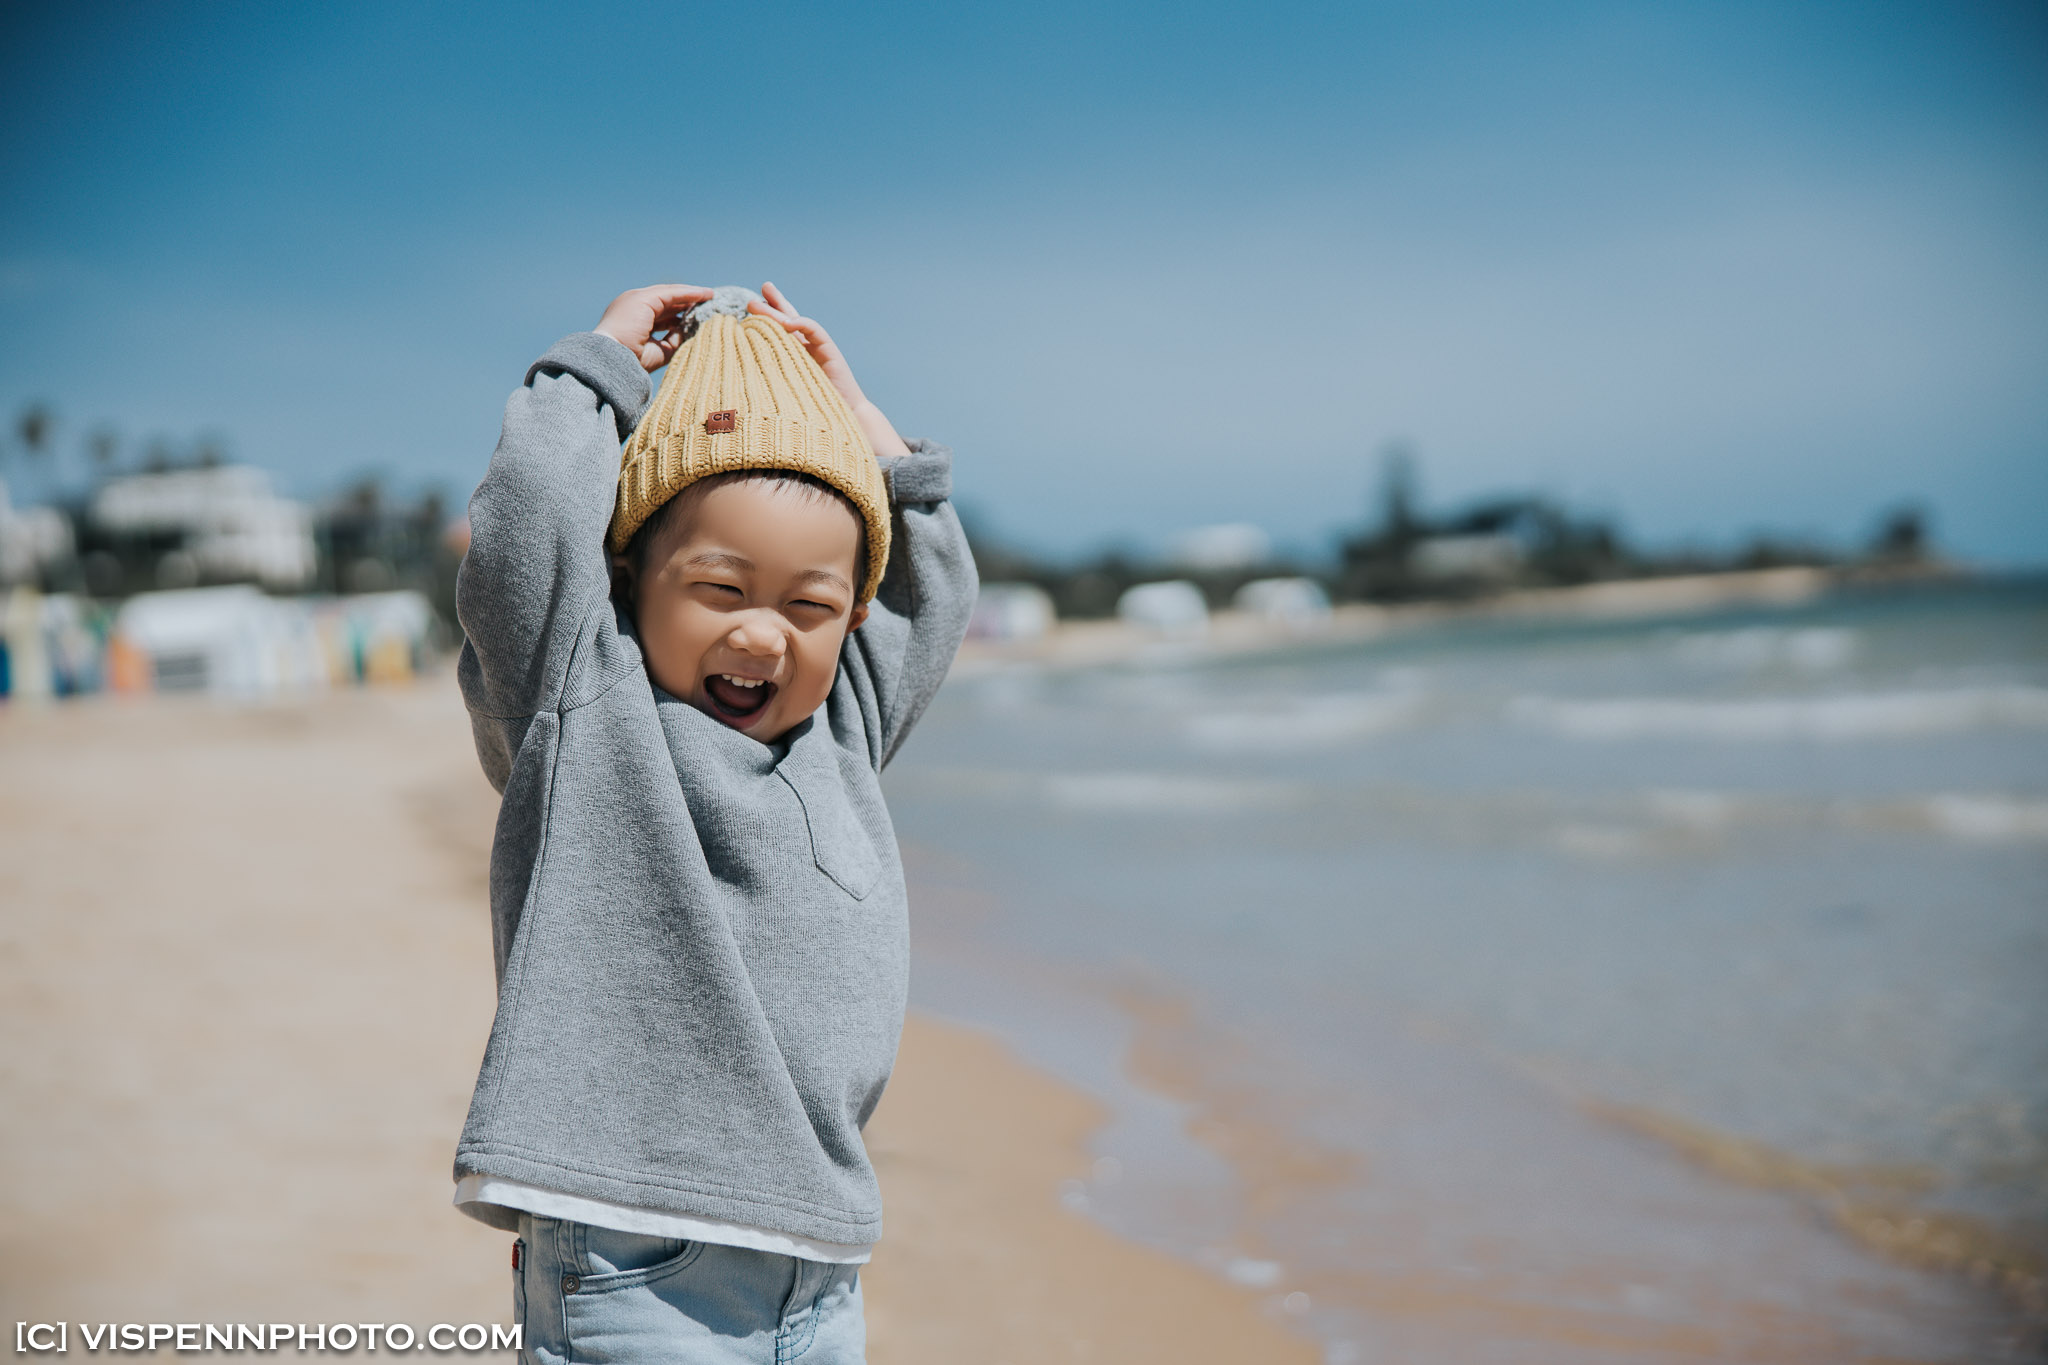 Melbourne Newborn Baby Family Photo BaoBao VISPENN 墨尔本 儿童 宝宝 百天照 满月照 孕妇照 全家福 KIDS CindiYUAN 2943 VISPENN